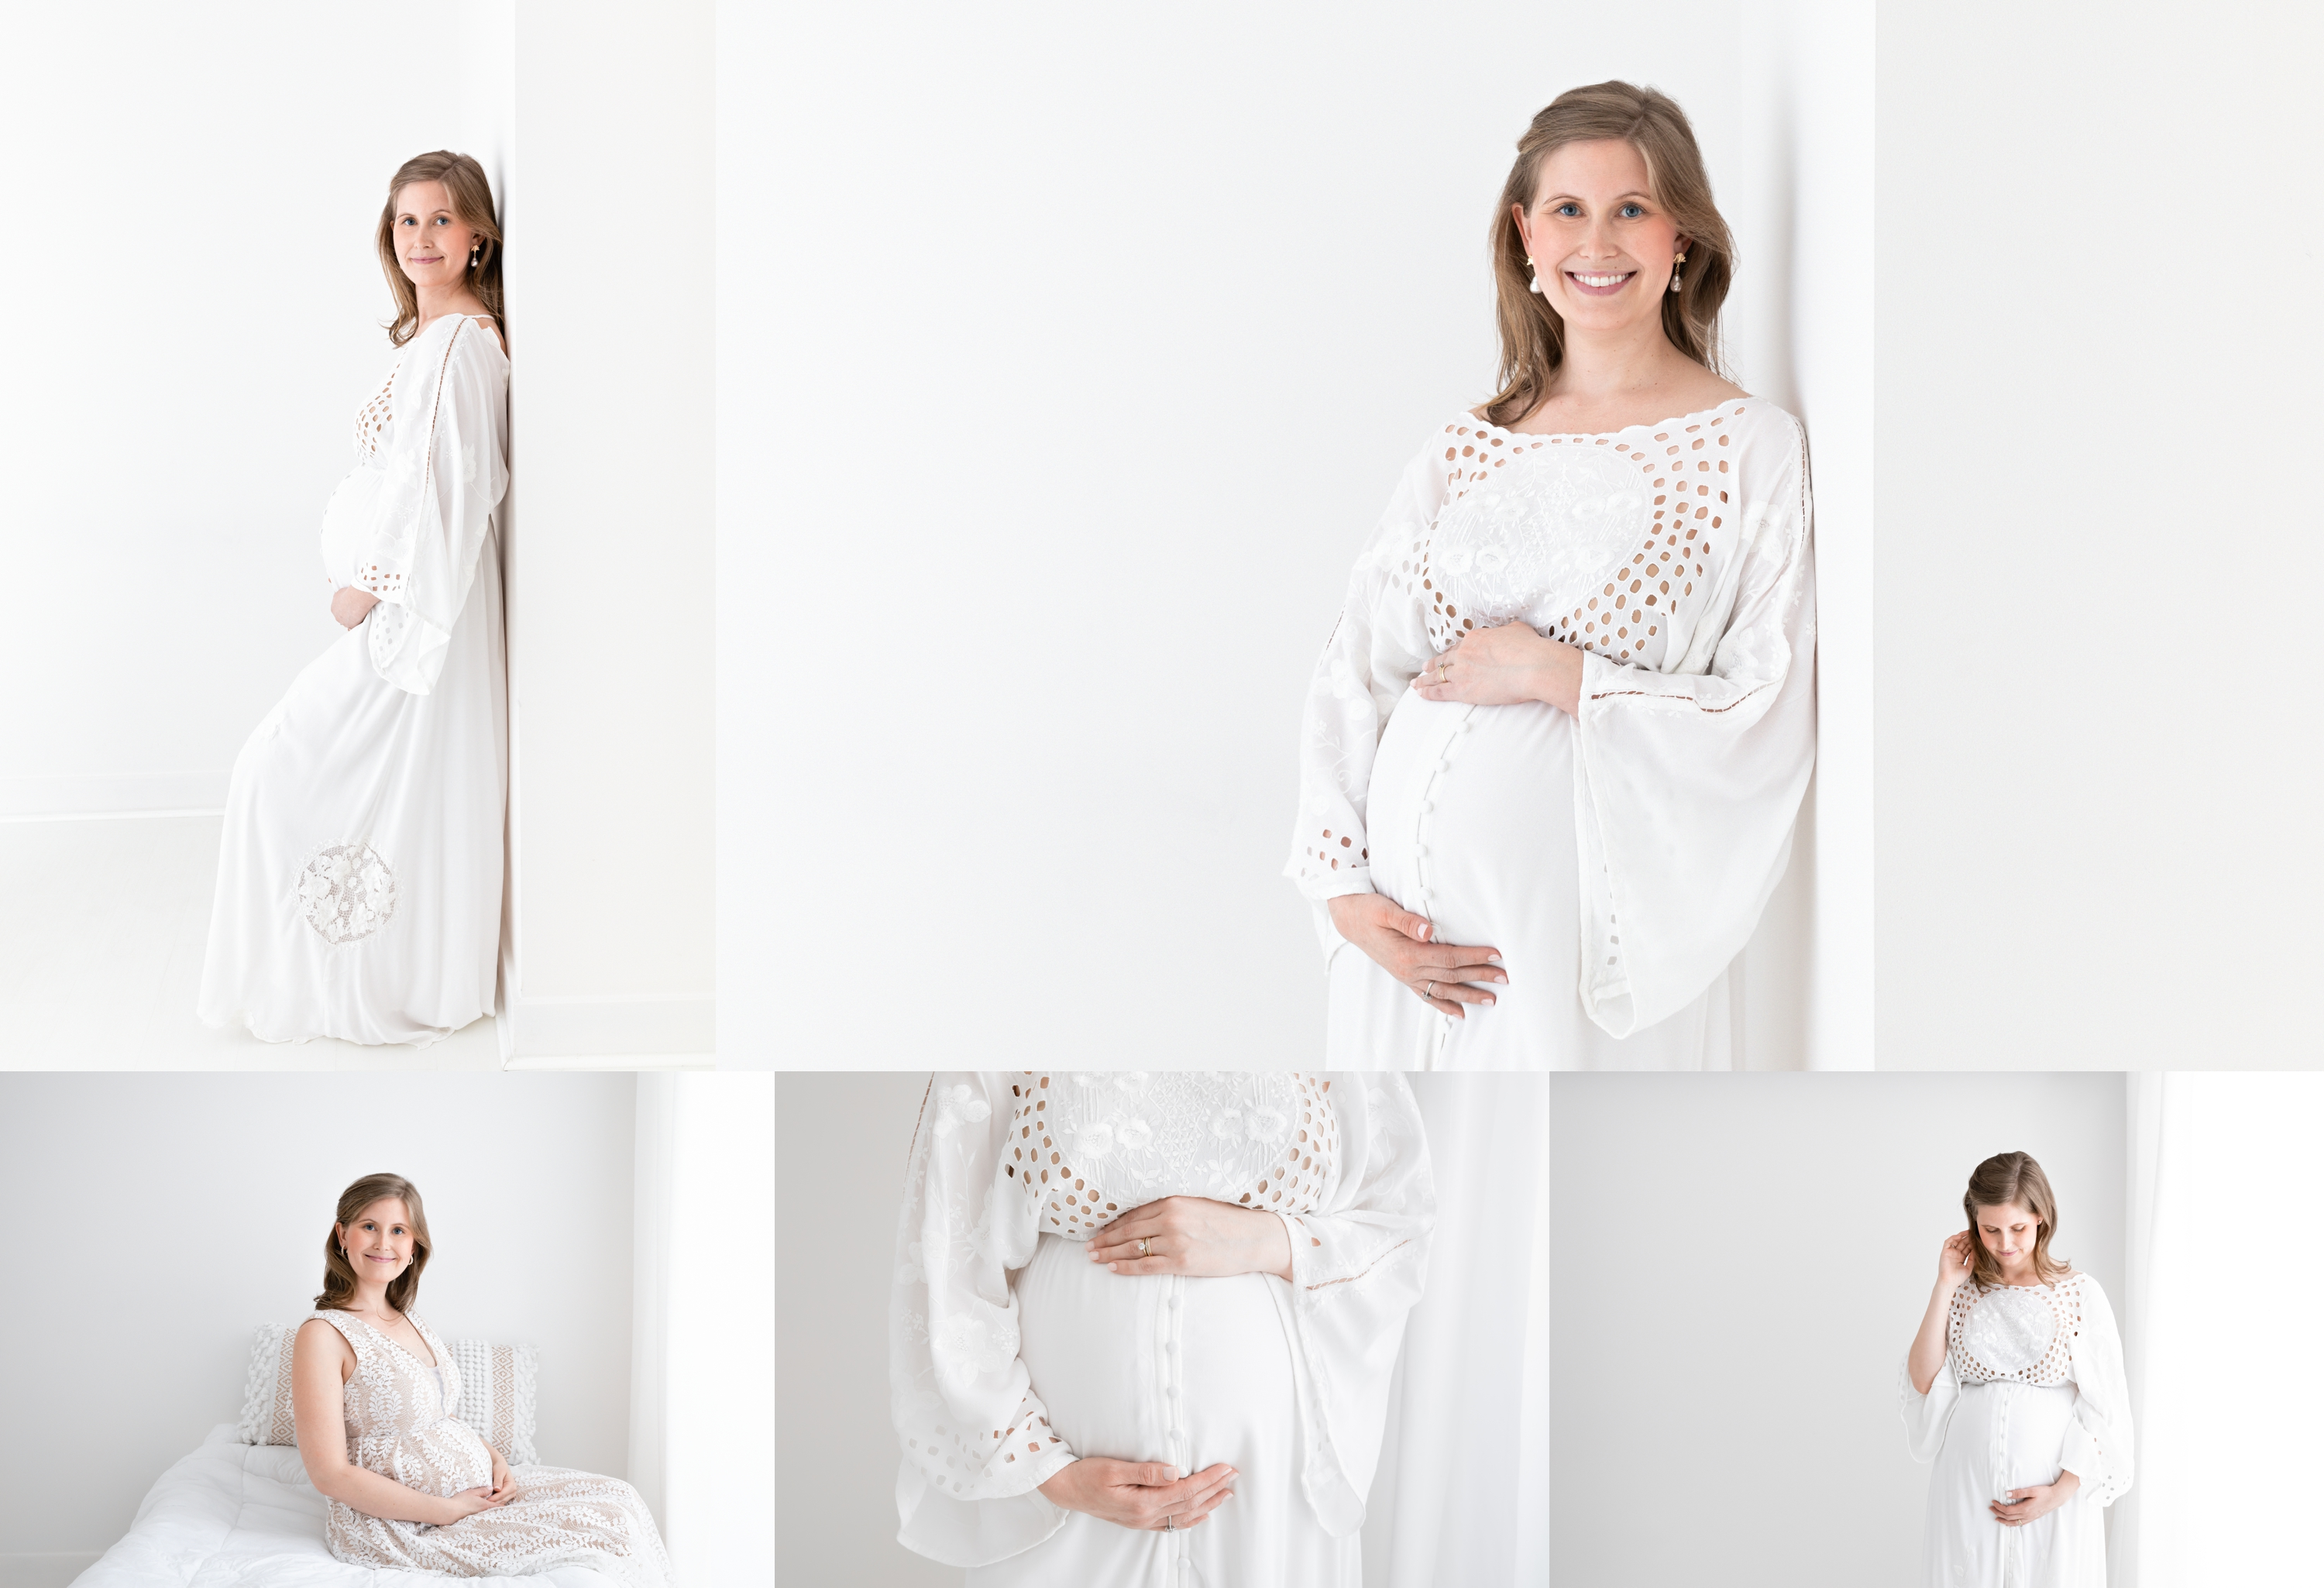 classic maternity photoshoot on white background in NYC maternity photo studio